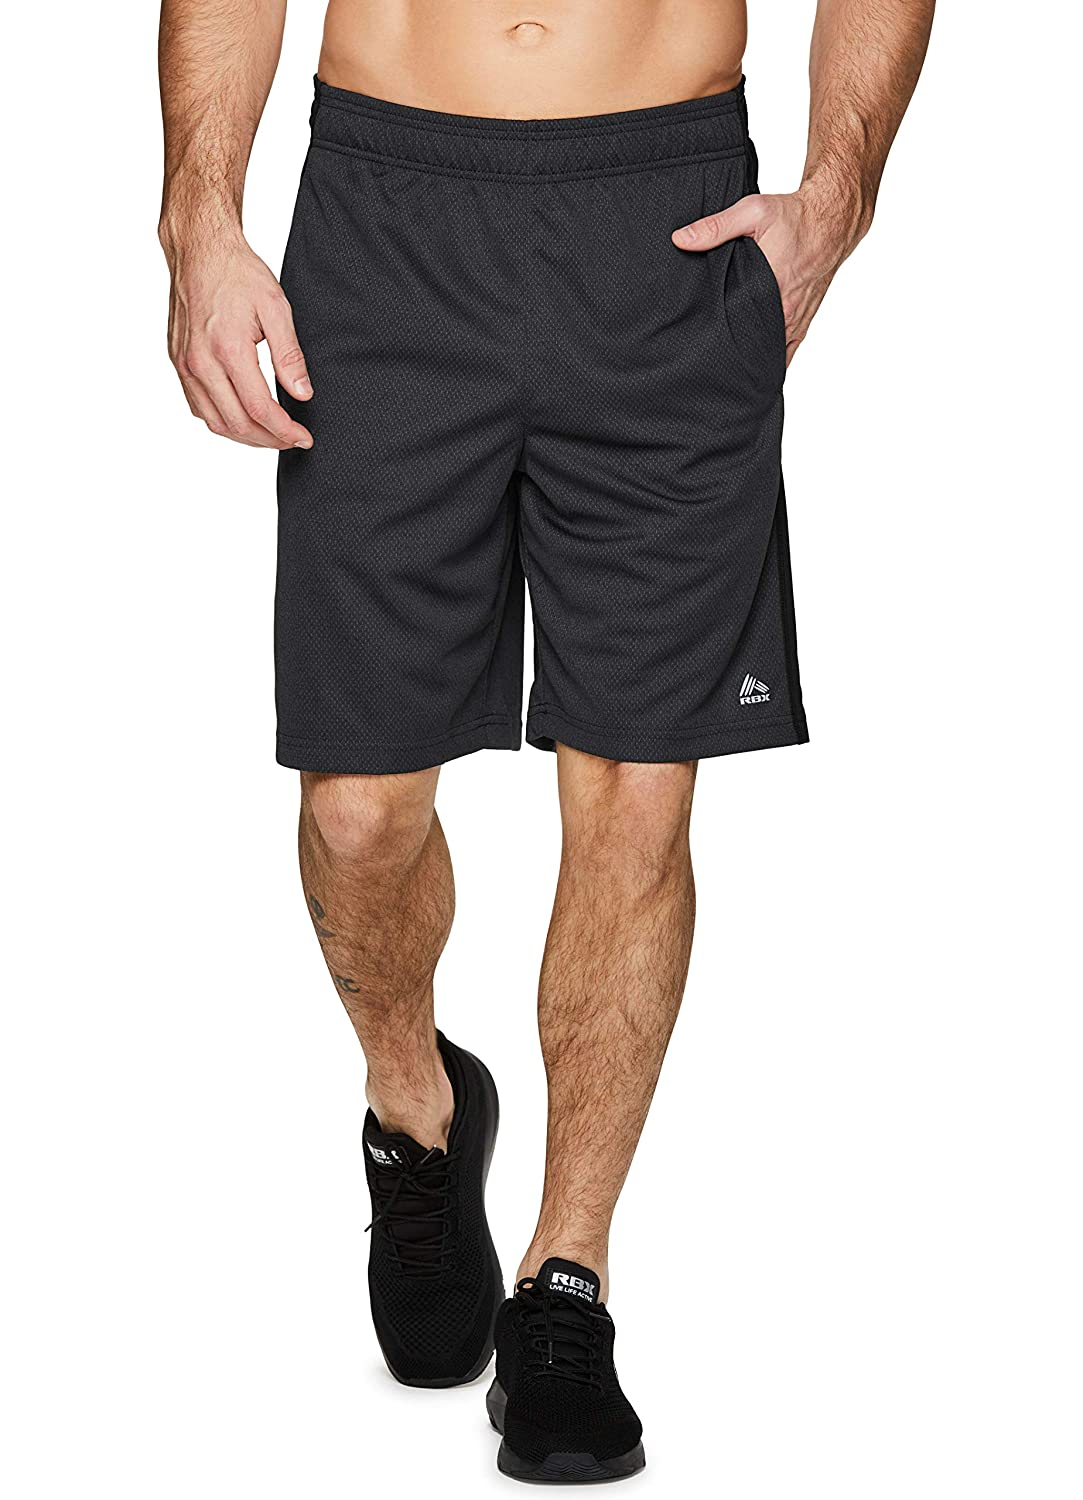 RBX Active Mens 9 Inseam Workout Running Gym Athletic Shorts with Pockets